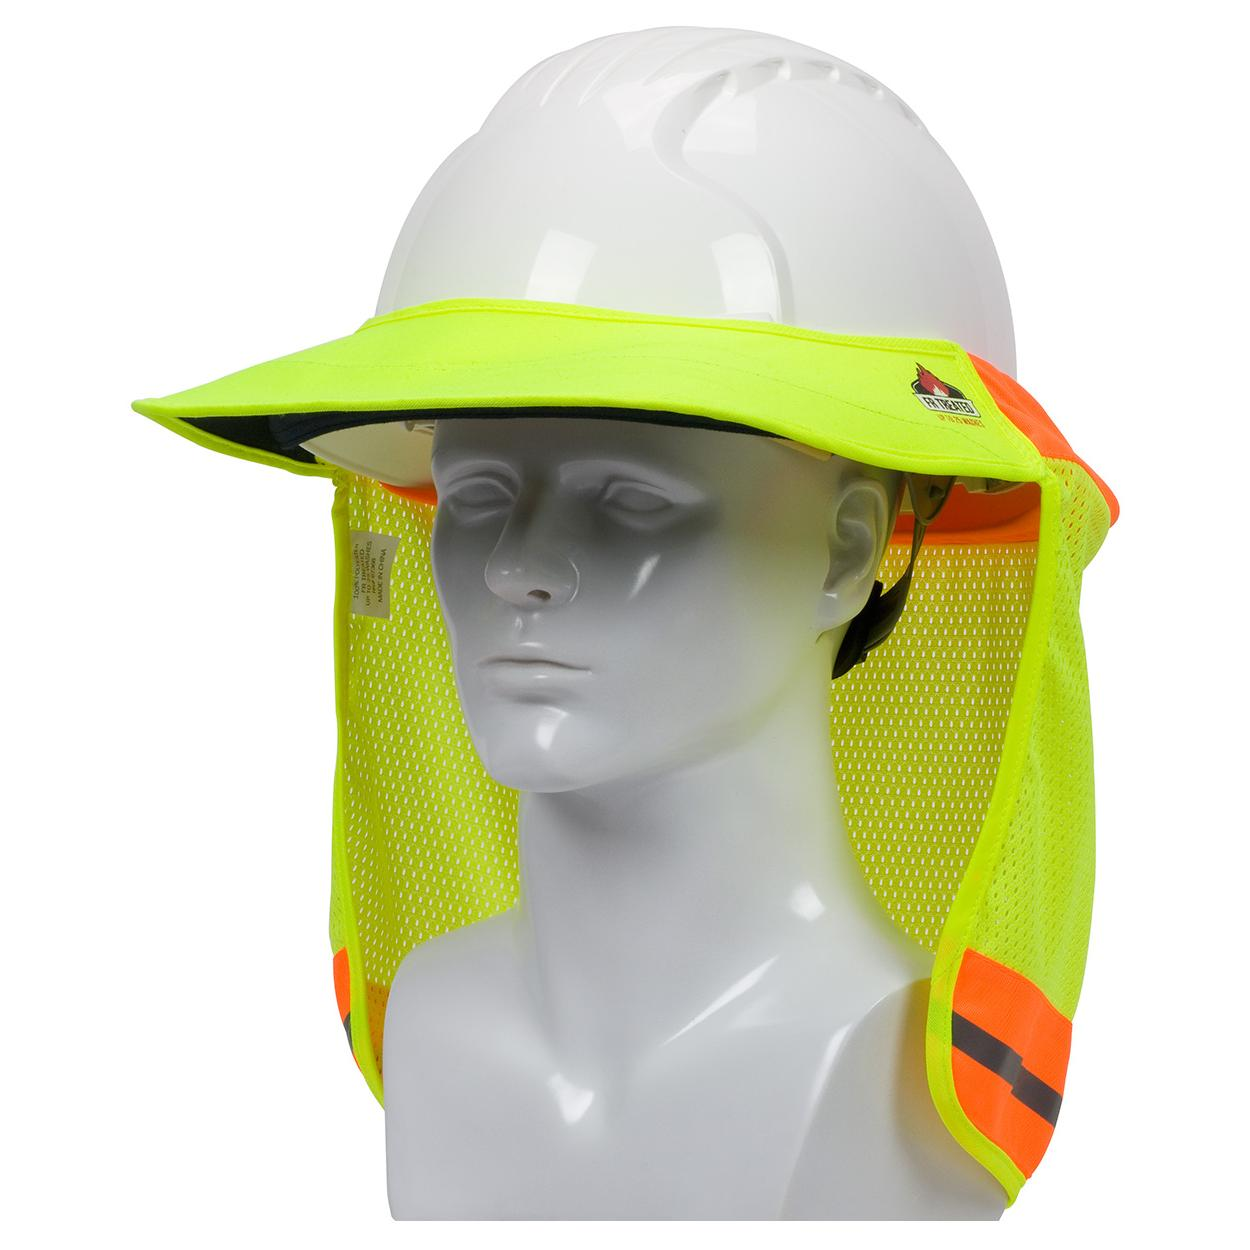 8f48cb832 PIP 396-801 - Hard Hat Hi-Vis FR Hard Hat Neck Sun Shade with Visor